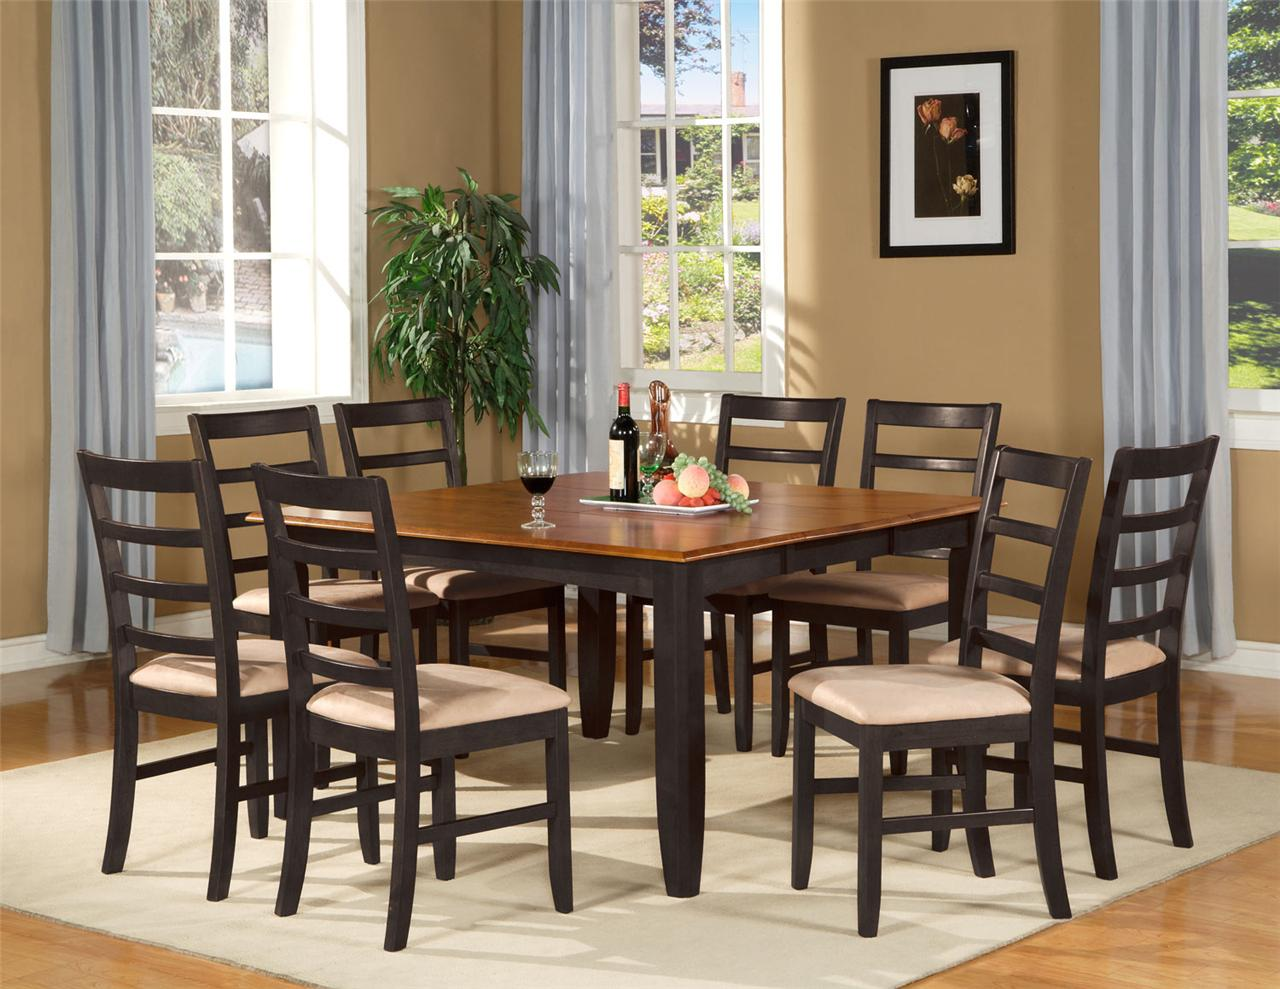 7 pc square dinette kitchen dining table set 6 chairs ebay - Dining room sets ...